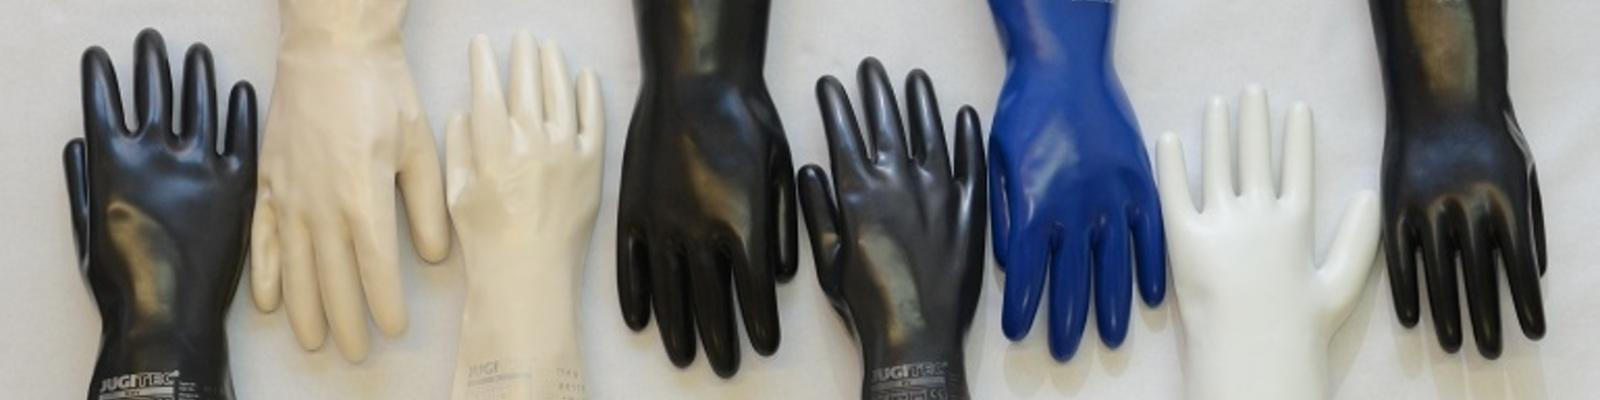 Piercan glove box gloves